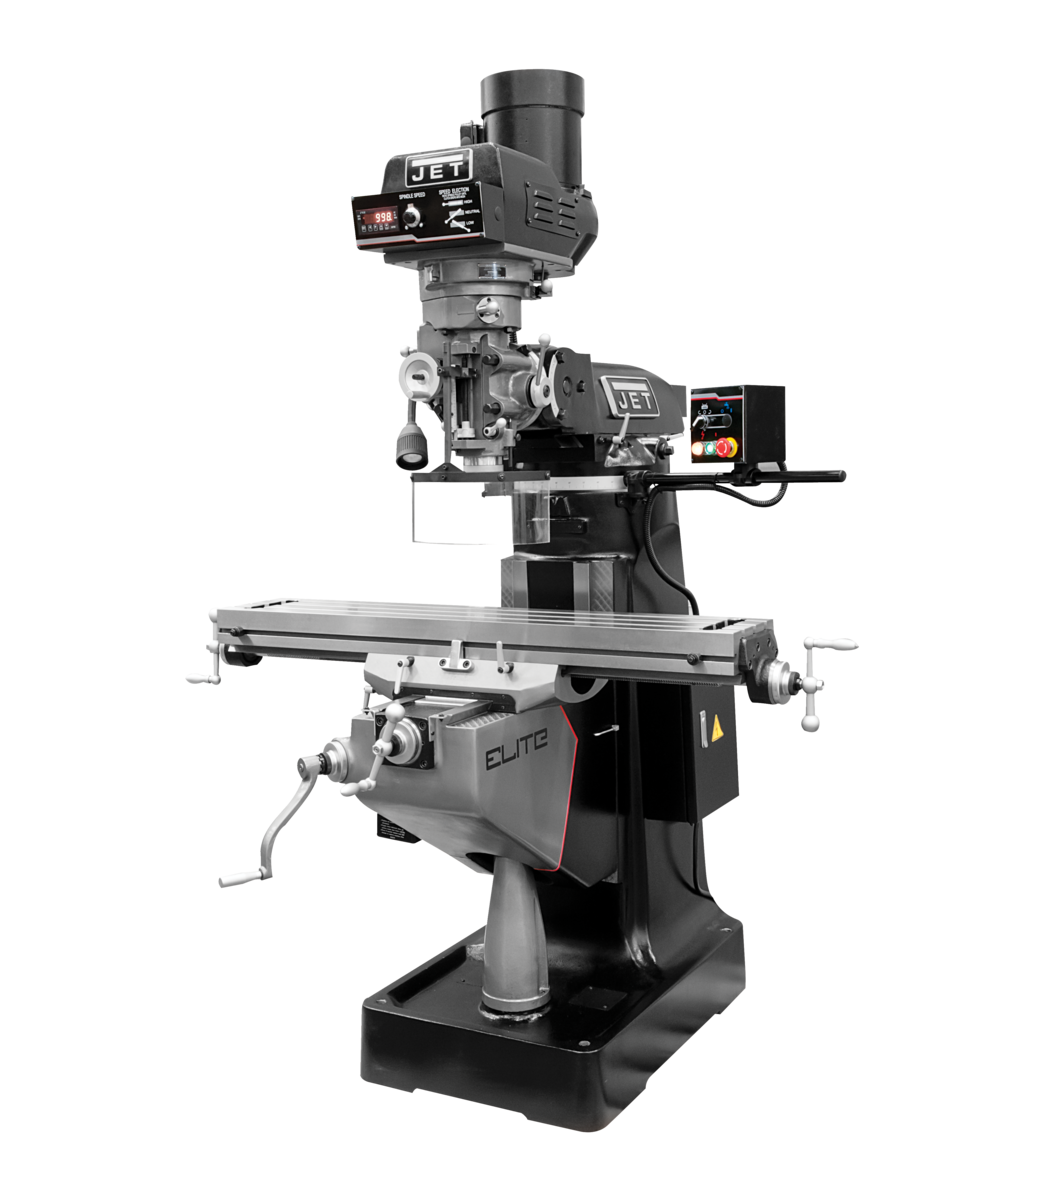 EVS-949 Mill with 3-Axis ACU-RITE 203 (Knee) DRO and X, Y-Axis JET Powerfeeds